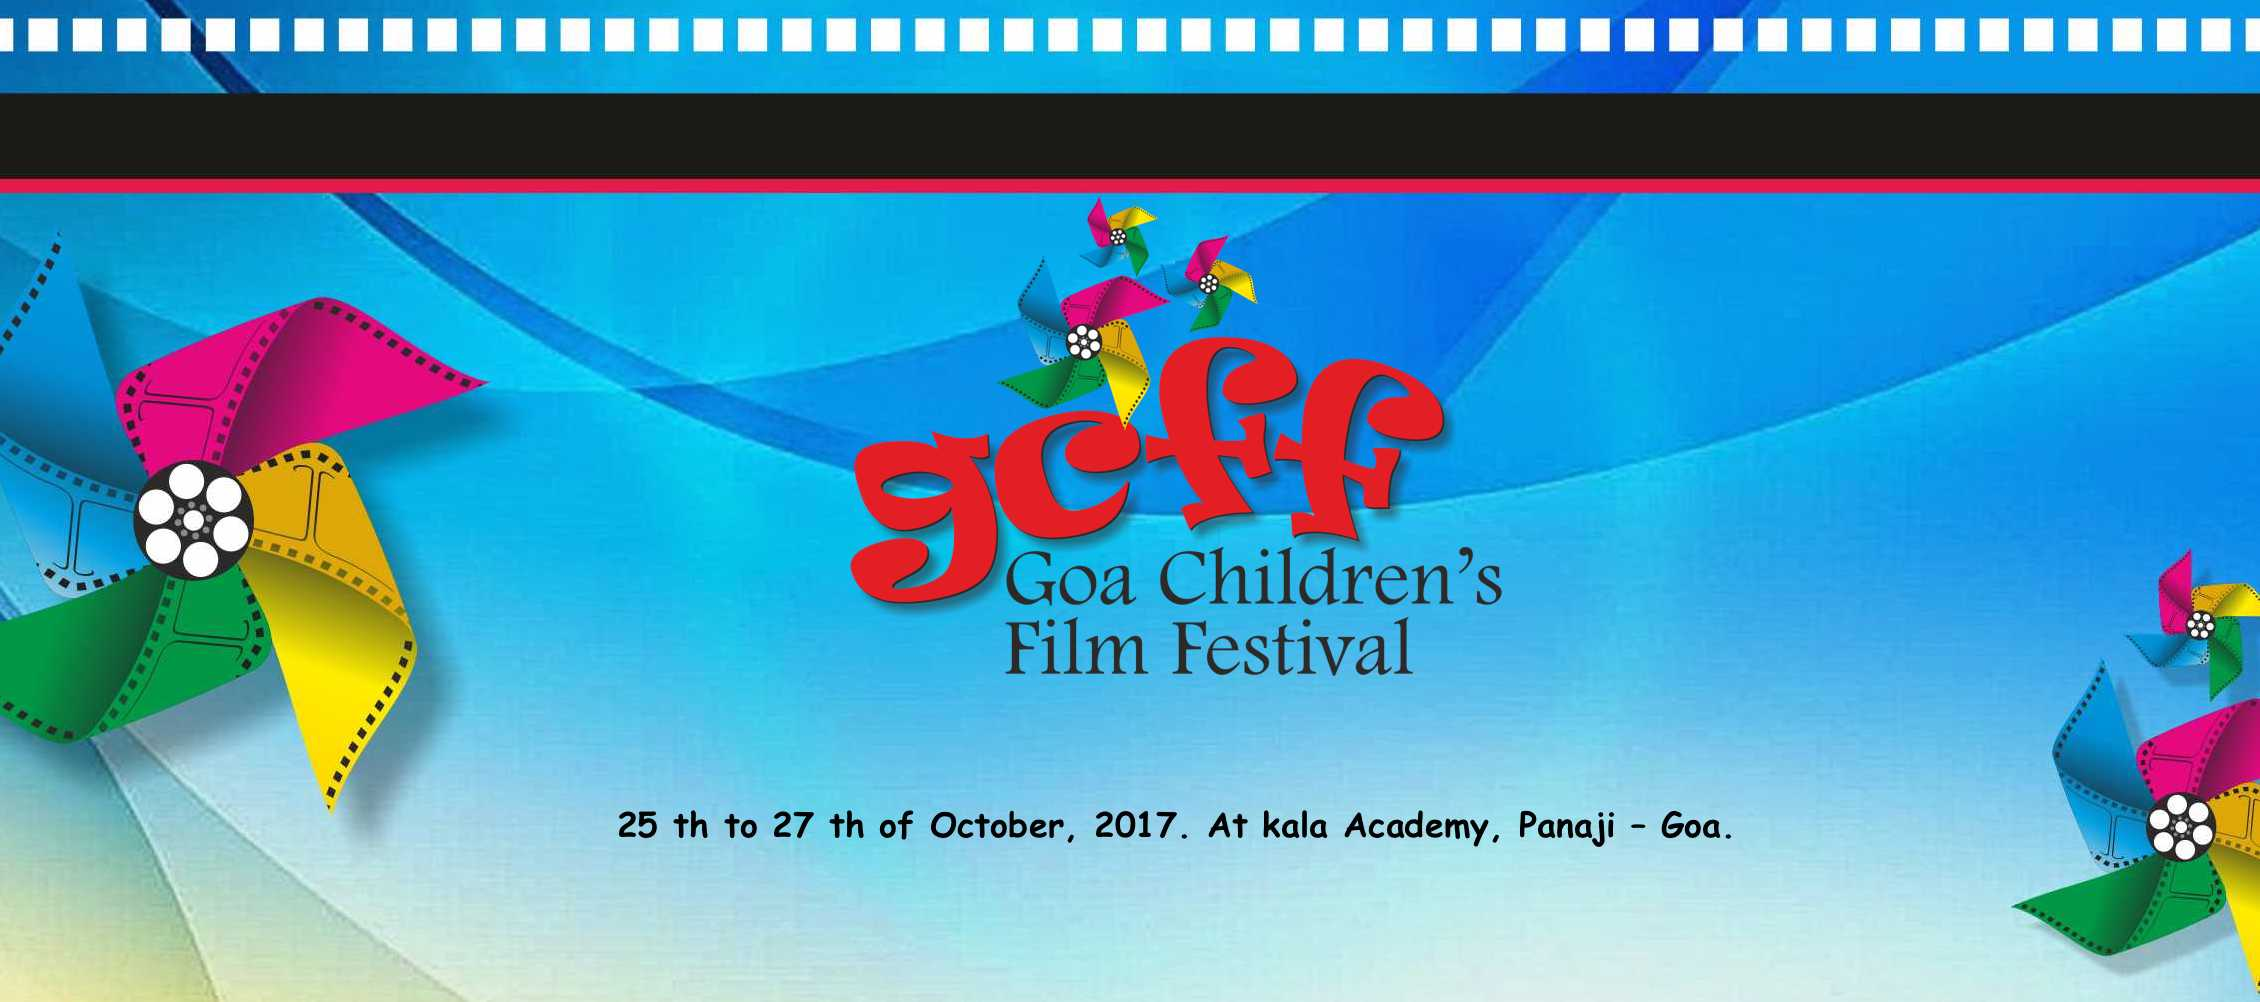 Goa Children's Film Festival